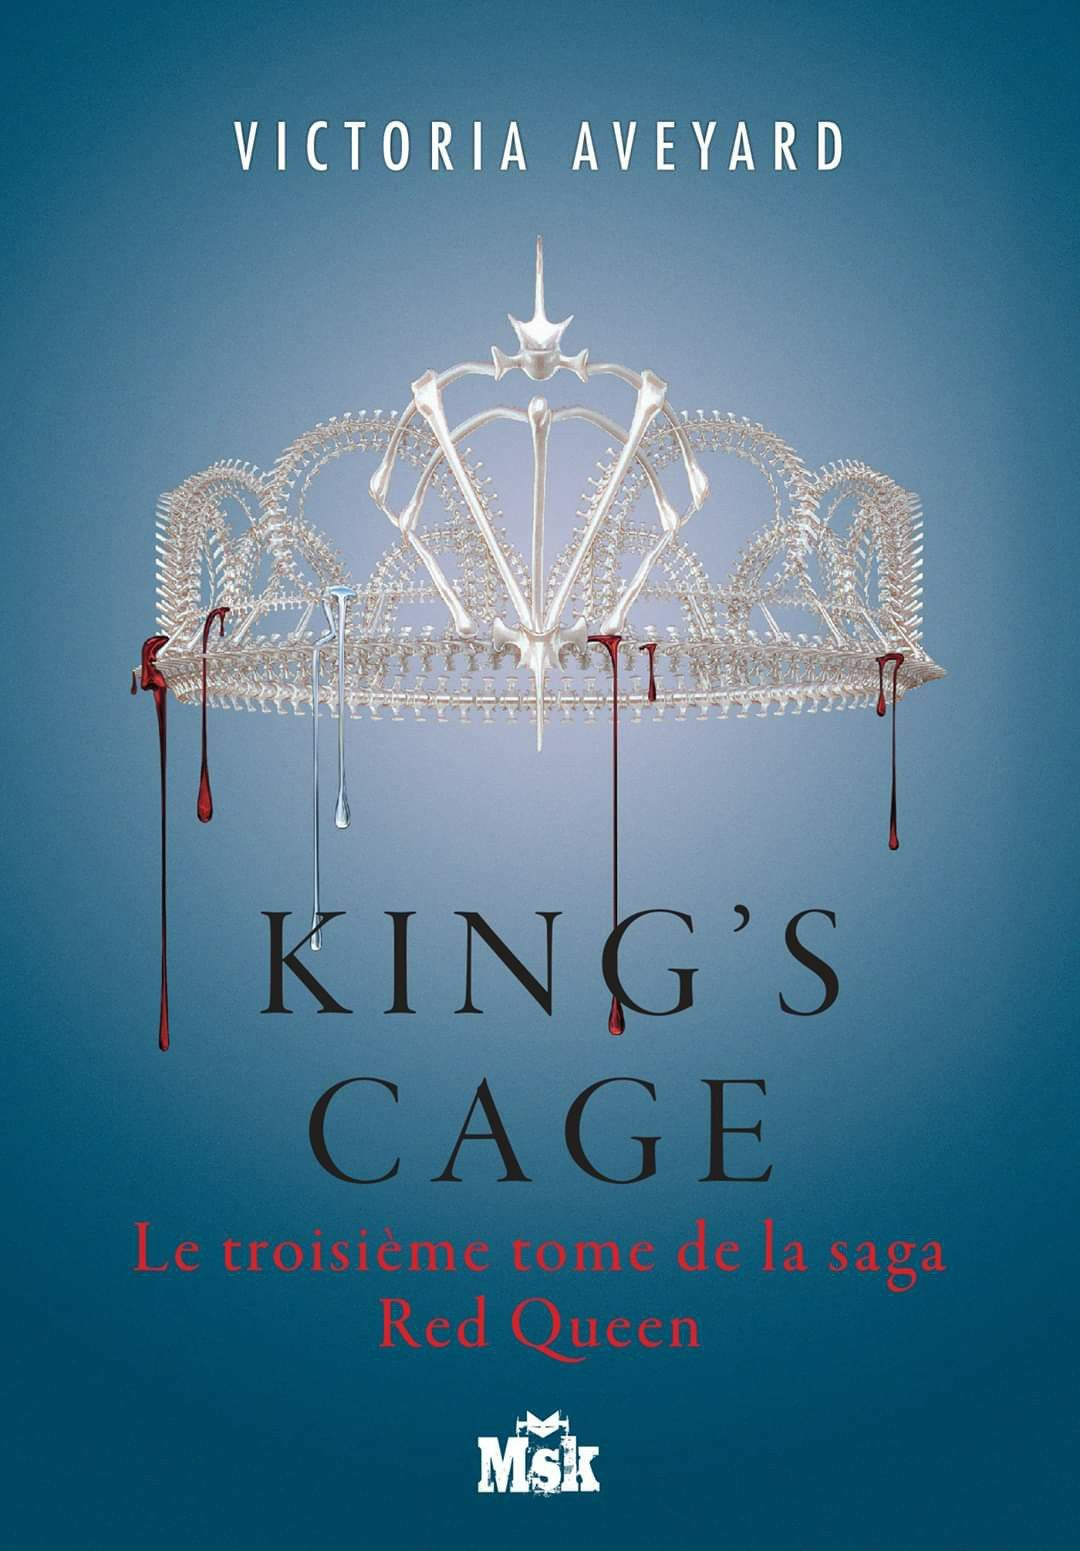 King S Cage By Victoria Aveyard French Cover In 2020 King Cage Red Queen Victoria Aveyard